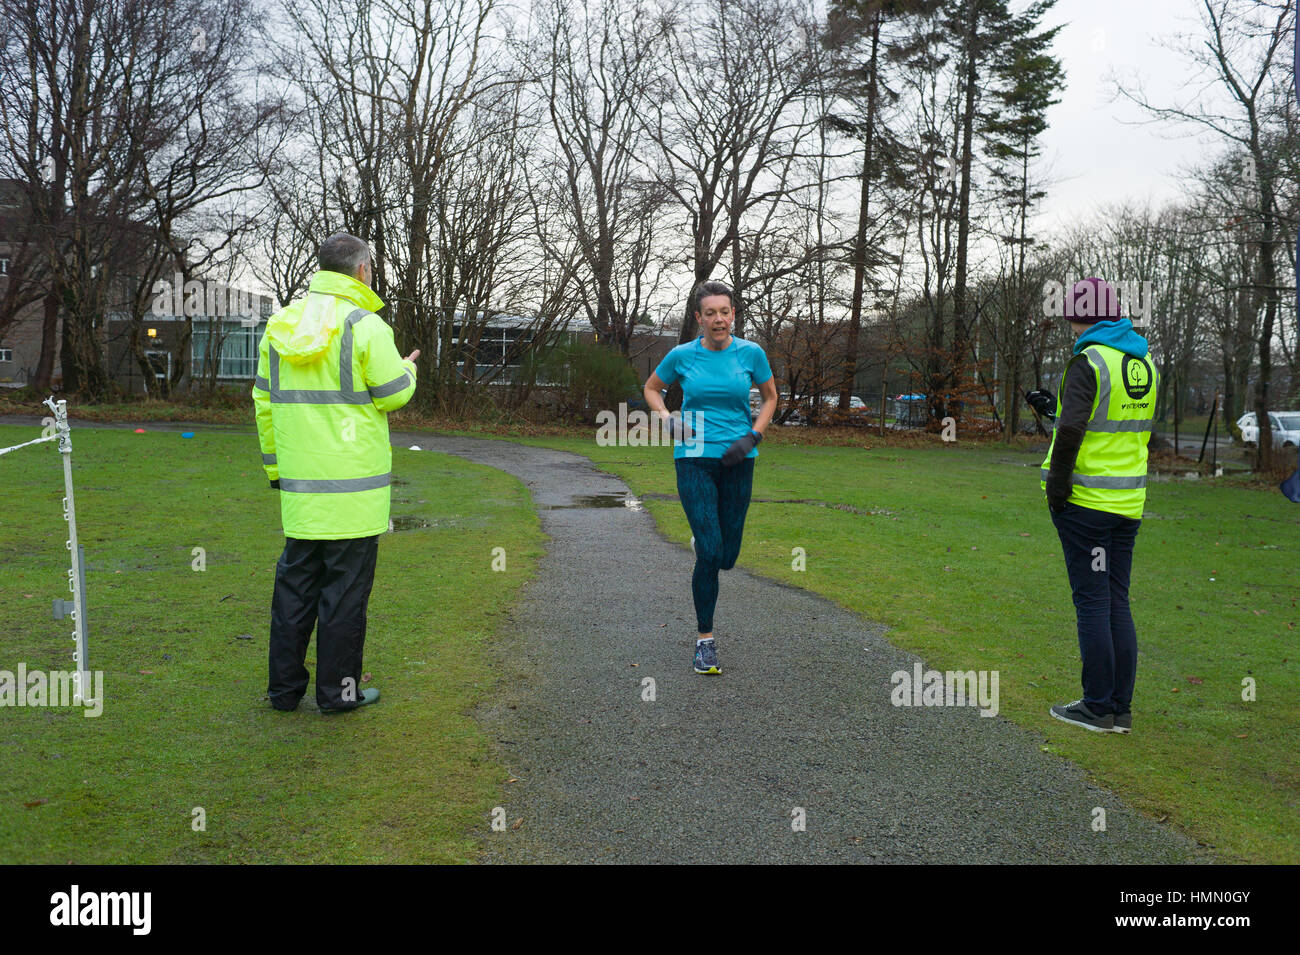 Aberdeen, UK. 4th February, 2017. Runners take part in the Aberdeen weekly Park Run on a wet Saturday morning Credit: - Stock Image